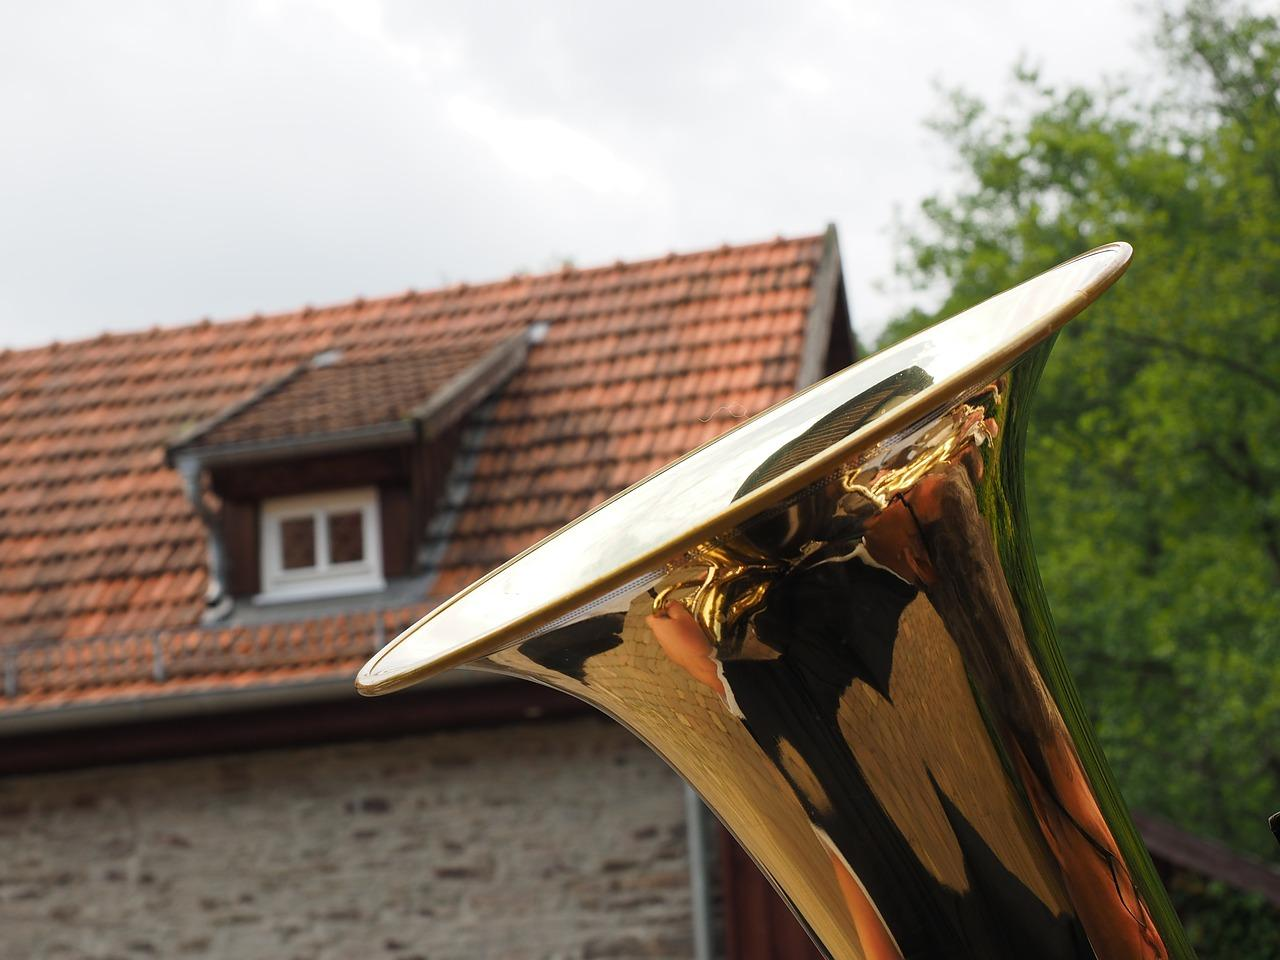 Tuba in front of a house